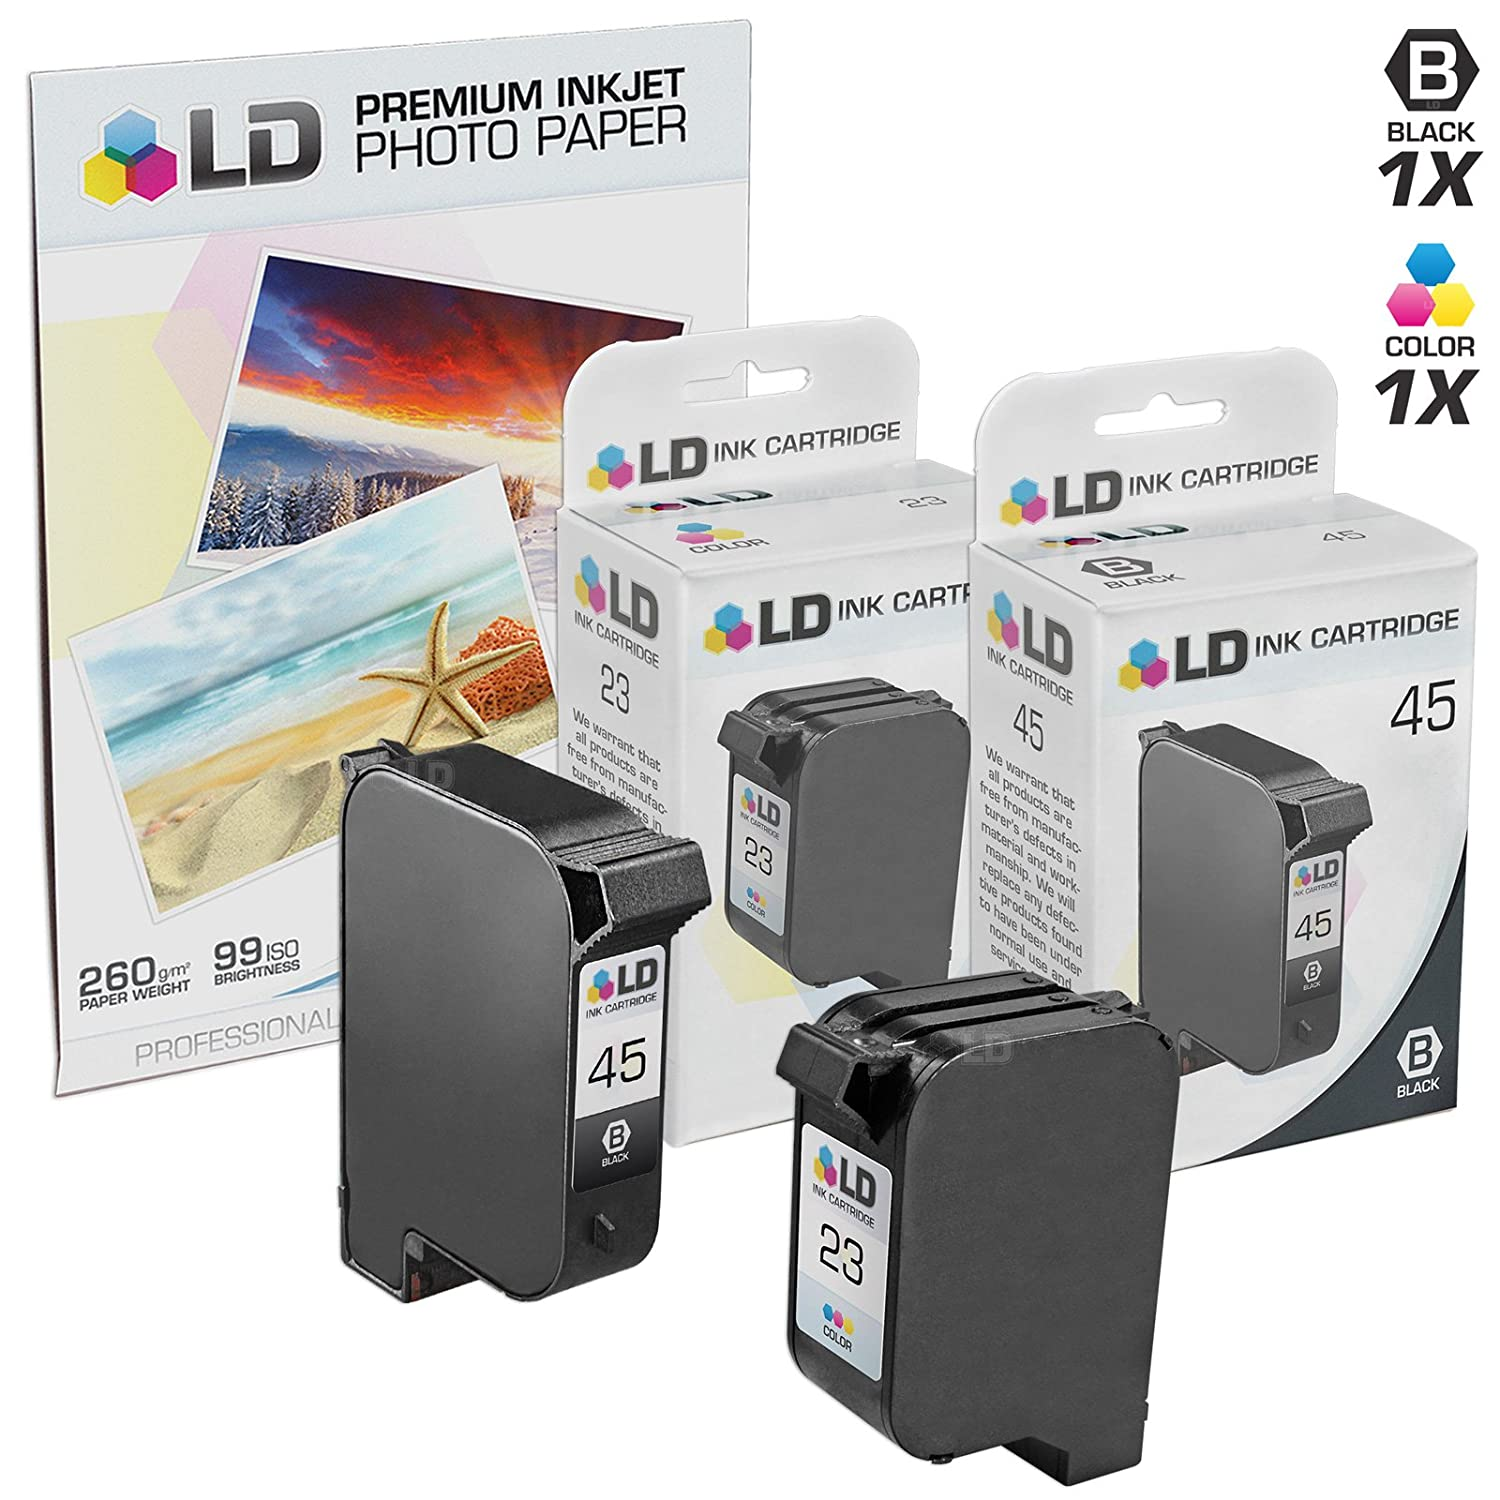 LD Remanufactured Replacement Ink Cartridges for HP 45 & HP 23 Combo Set - 1 Black HP 45 (51645A) and 1 Tri-Color HP 23 (C1283D) + Free 20 Pack of LD Brand 4x6 Photo Paper